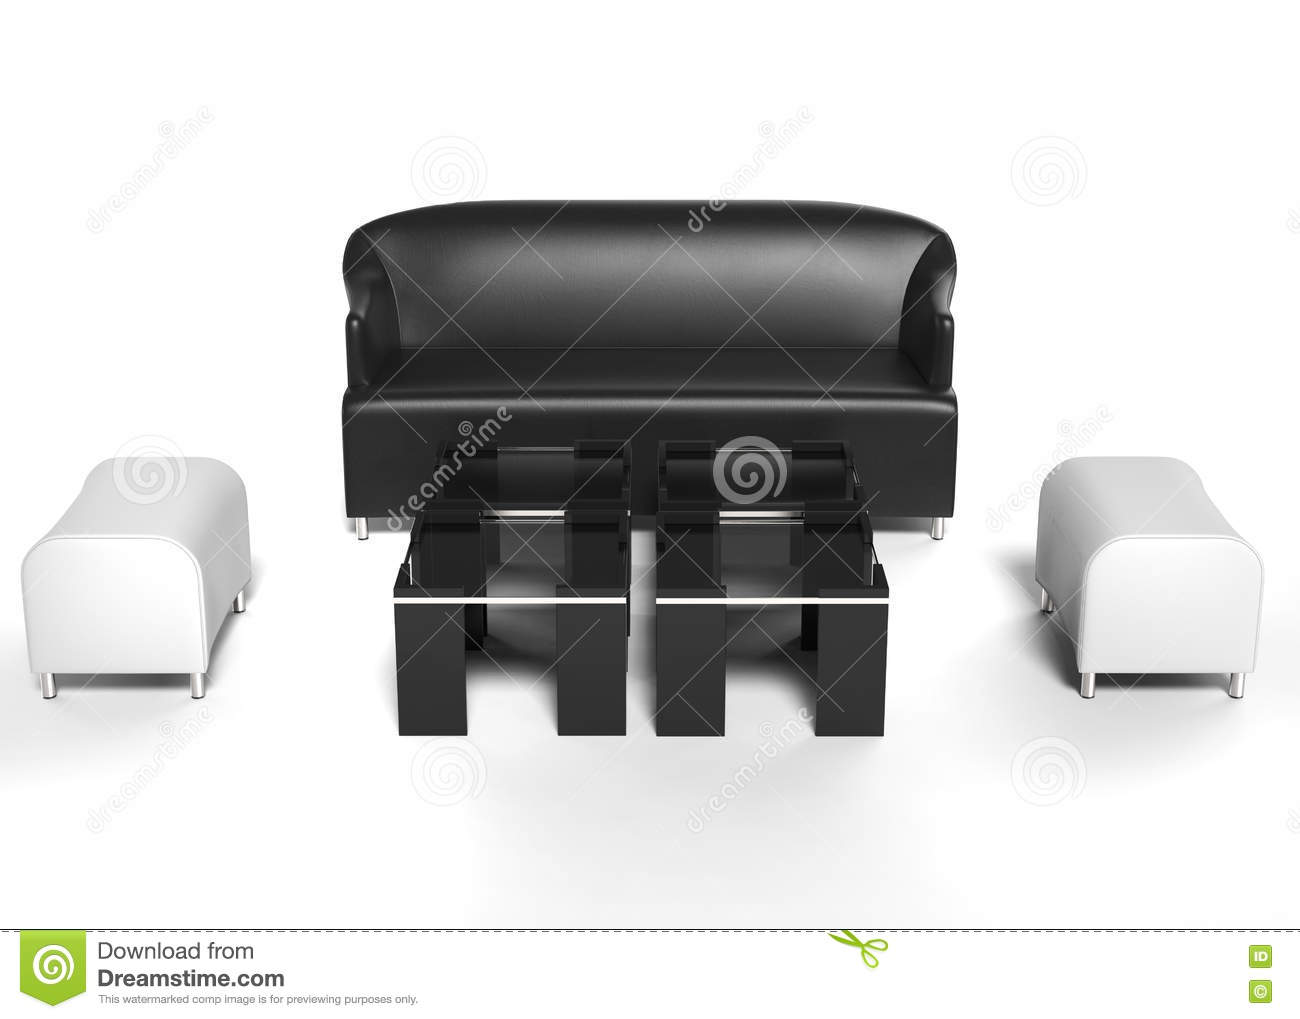 Living room set furniture - black leather sofa with white ottomans and coffee tables